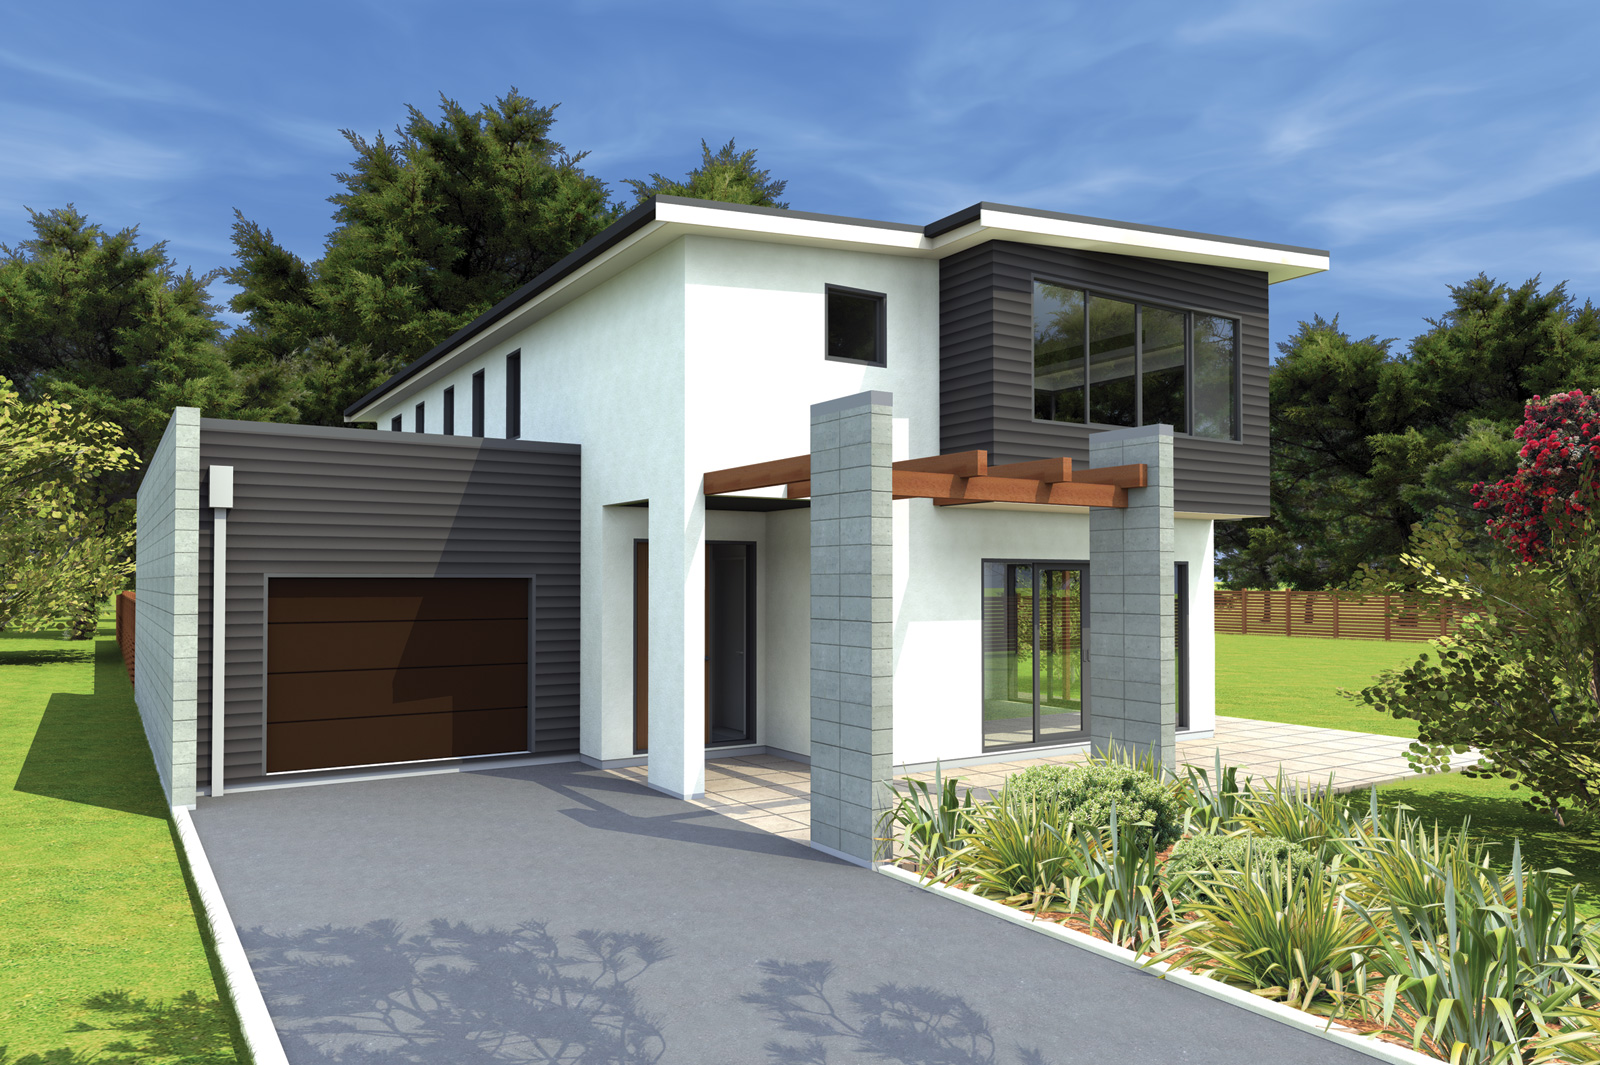 New home designs latest new modern homes designs new for New home designs